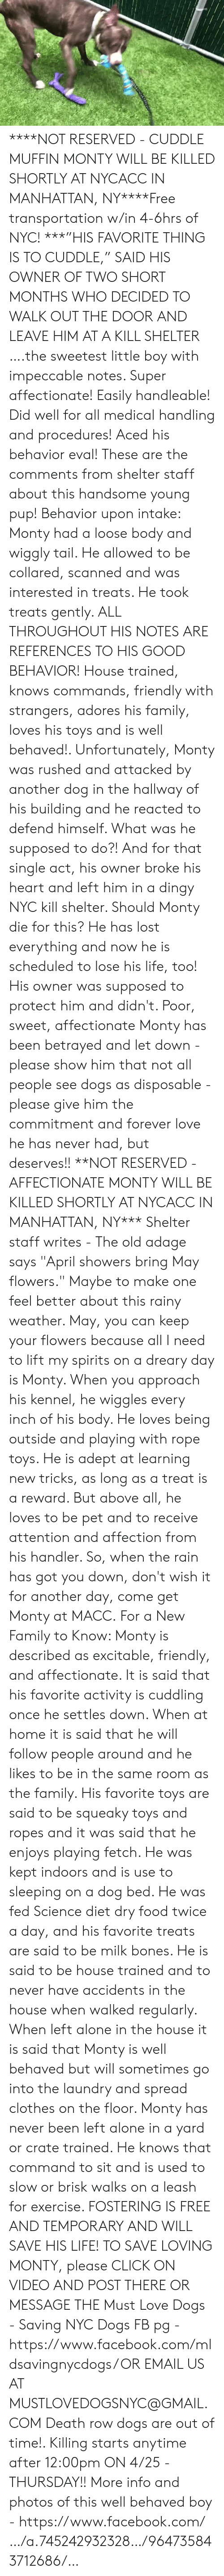 """Being Alone, Bones, and Click: ****NOT RESERVED - CUDDLE MUFFIN MONTY WILL BE KILLED SHORTLY AT NYCACC IN MANHATTAN, NY****Free transportation w/in 4-6hrs of NYC!  ***""""HIS FAVORITE THING IS TO CUDDLE,"""" SAID HIS OWNER OF TWO SHORT MONTHS WHO DECIDED TO WALK OUT THE DOOR AND LEAVE HIM AT A KILL SHELTER ….the sweetest little boy with impeccable notes. Super affectionate! Easily handleable! Did well for all medical handling and procedures! Aced his behavior eval! These are the comments from shelter staff about this handsome young pup! Behavior upon intake: Monty had a loose body and wiggly tail. He allowed to be collared, scanned and was interested in treats. He took treats gently. ALL THROUGHOUT HIS NOTES ARE REFERENCES TO HIS GOOD BEHAVIOR! House trained, knows commands, friendly with strangers, adores his family, loves his toys and is well behaved!. Unfortunately, Monty was rushed and attacked by another dog in the hallway of his building and he reacted to defend himself. What was he supposed to do?! And for that single act, his owner broke his heart and left him in a dingy NYC kill shelter. Should Monty die for this? He has lost everything and now he is scheduled to lose his life, too! His owner was supposed to protect him and didn't. Poor, sweet, affectionate Monty has been betrayed and let down - please show him that not all people see dogs as disposable - please give him the commitment and forever love he has never had, but deserves!! **NOT RESERVED - AFFECTIONATE MONTY WILL BE KILLED SHORTLY AT NYCACC IN MANHATTAN, NY***   Shelter staff writes - The old adage says """"April showers bring May flowers."""" Maybe to make one feel better about this rainy weather. May, you can keep your flowers because all I need to lift my spirits on a dreary day is Monty. When you approach his kennel, he wiggles every inch of his body. He loves being outside and playing with rope toys. He is adept at learning new tricks, as long as a treat is a reward. But above all, he loves to be pet a"""